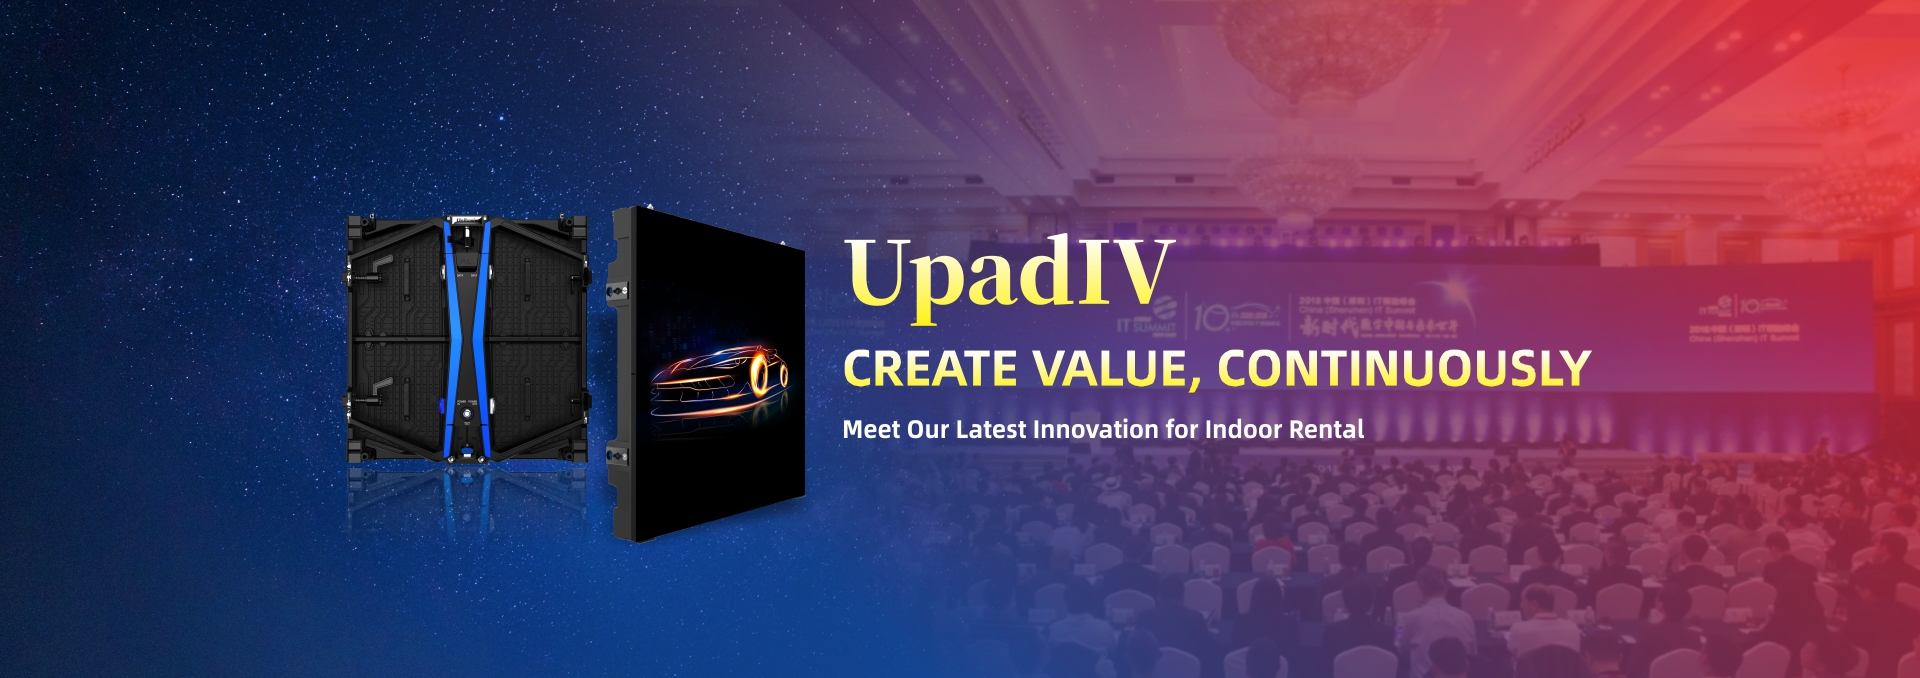 indoor rental LED - UpadIV